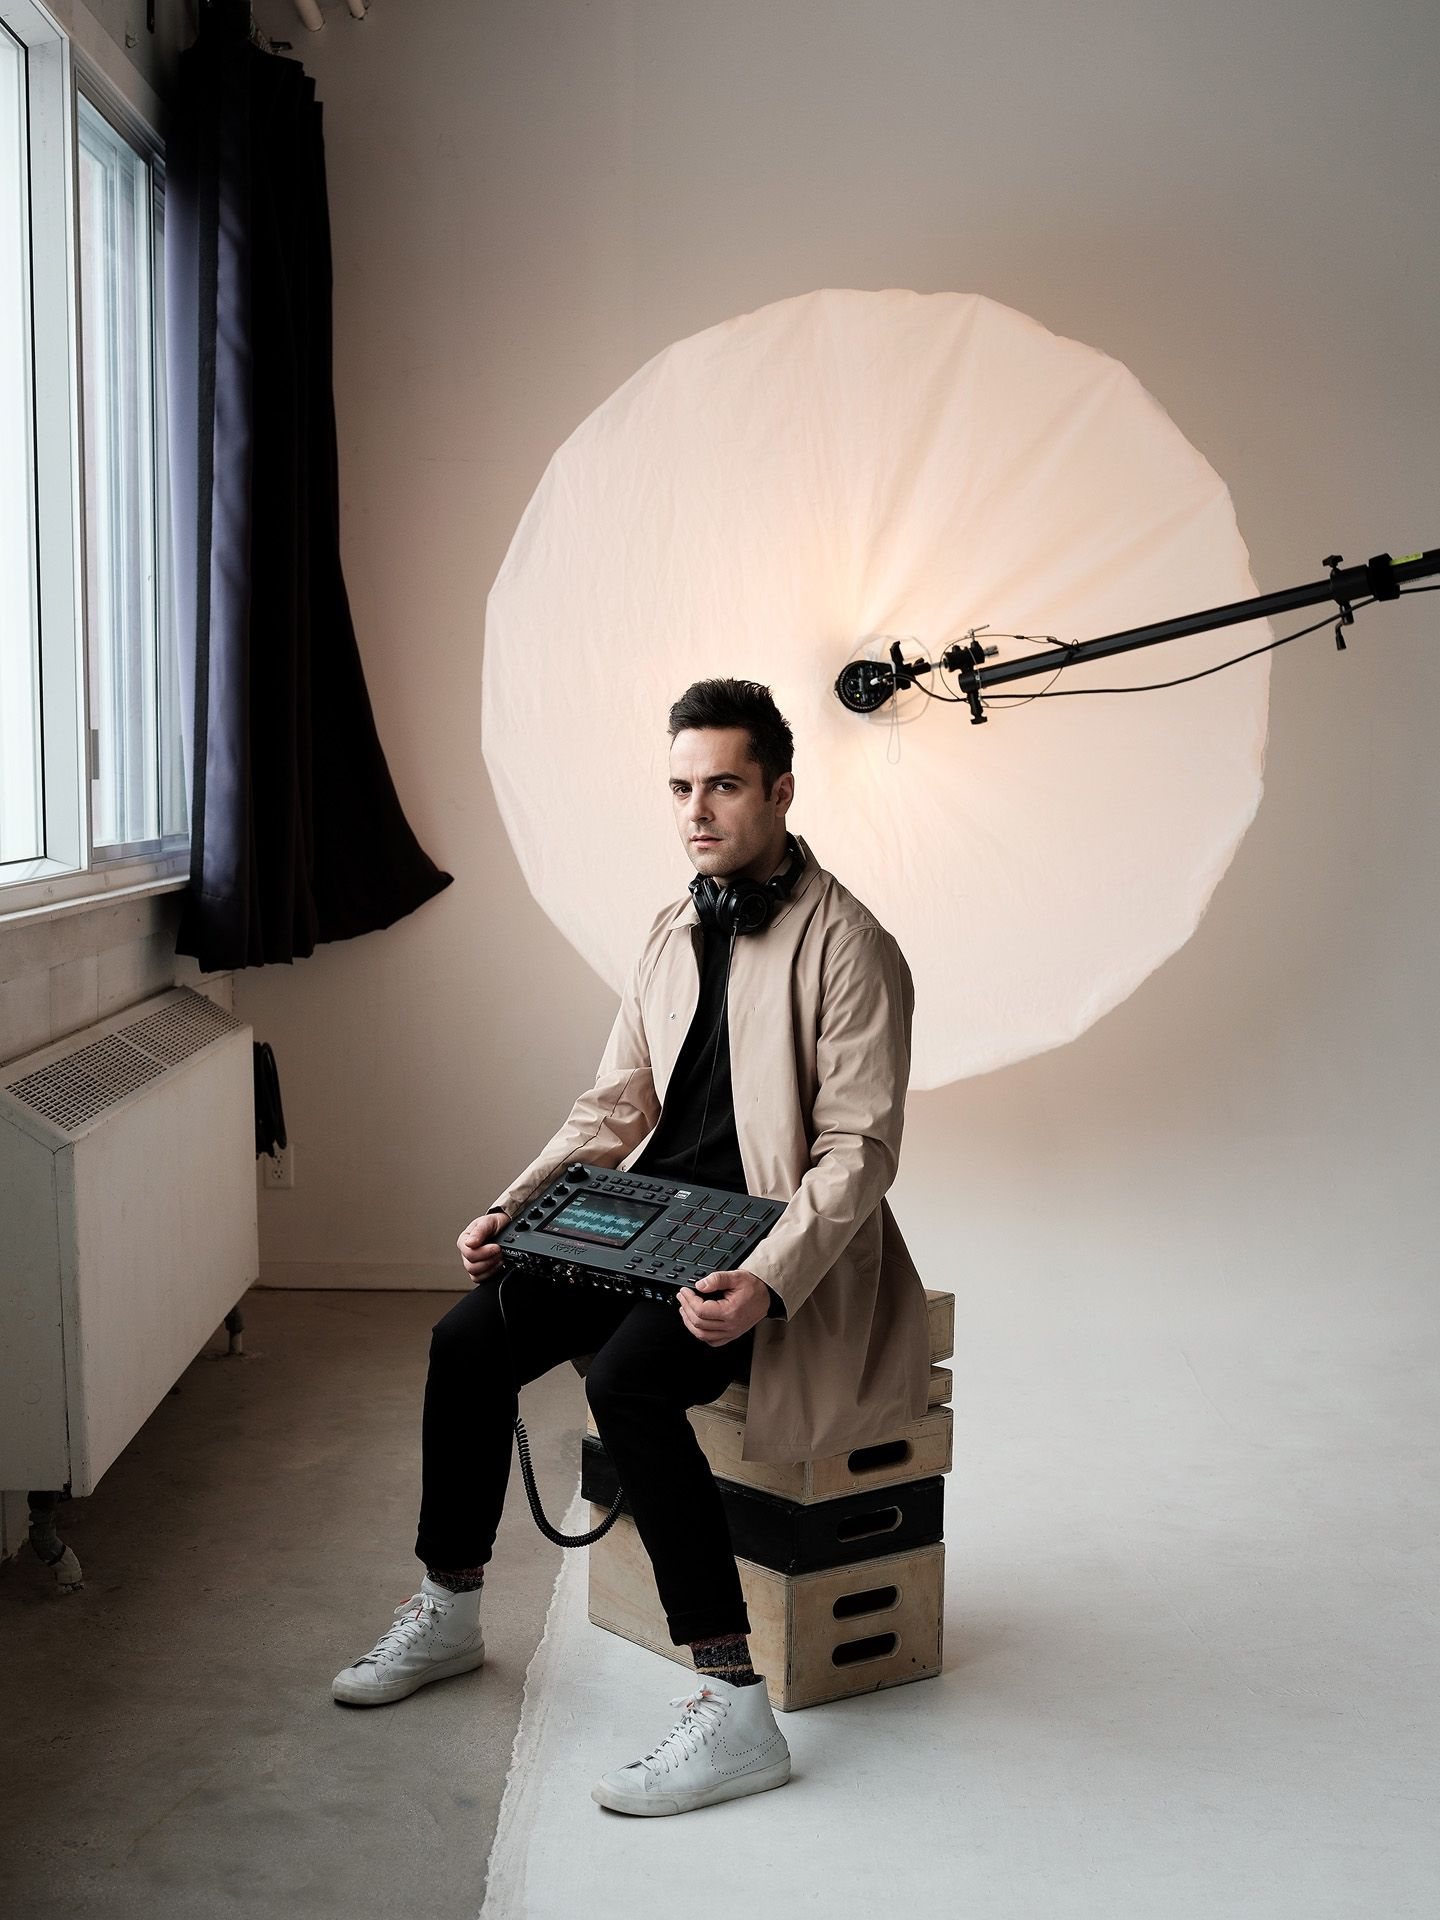 singer Dumas sitting on wooden crates looking at camera holding a synthetiser on his lap wearing light brown coat with black shirt photographed in studio by Guillaume Simoneau for Voir's magazine covers